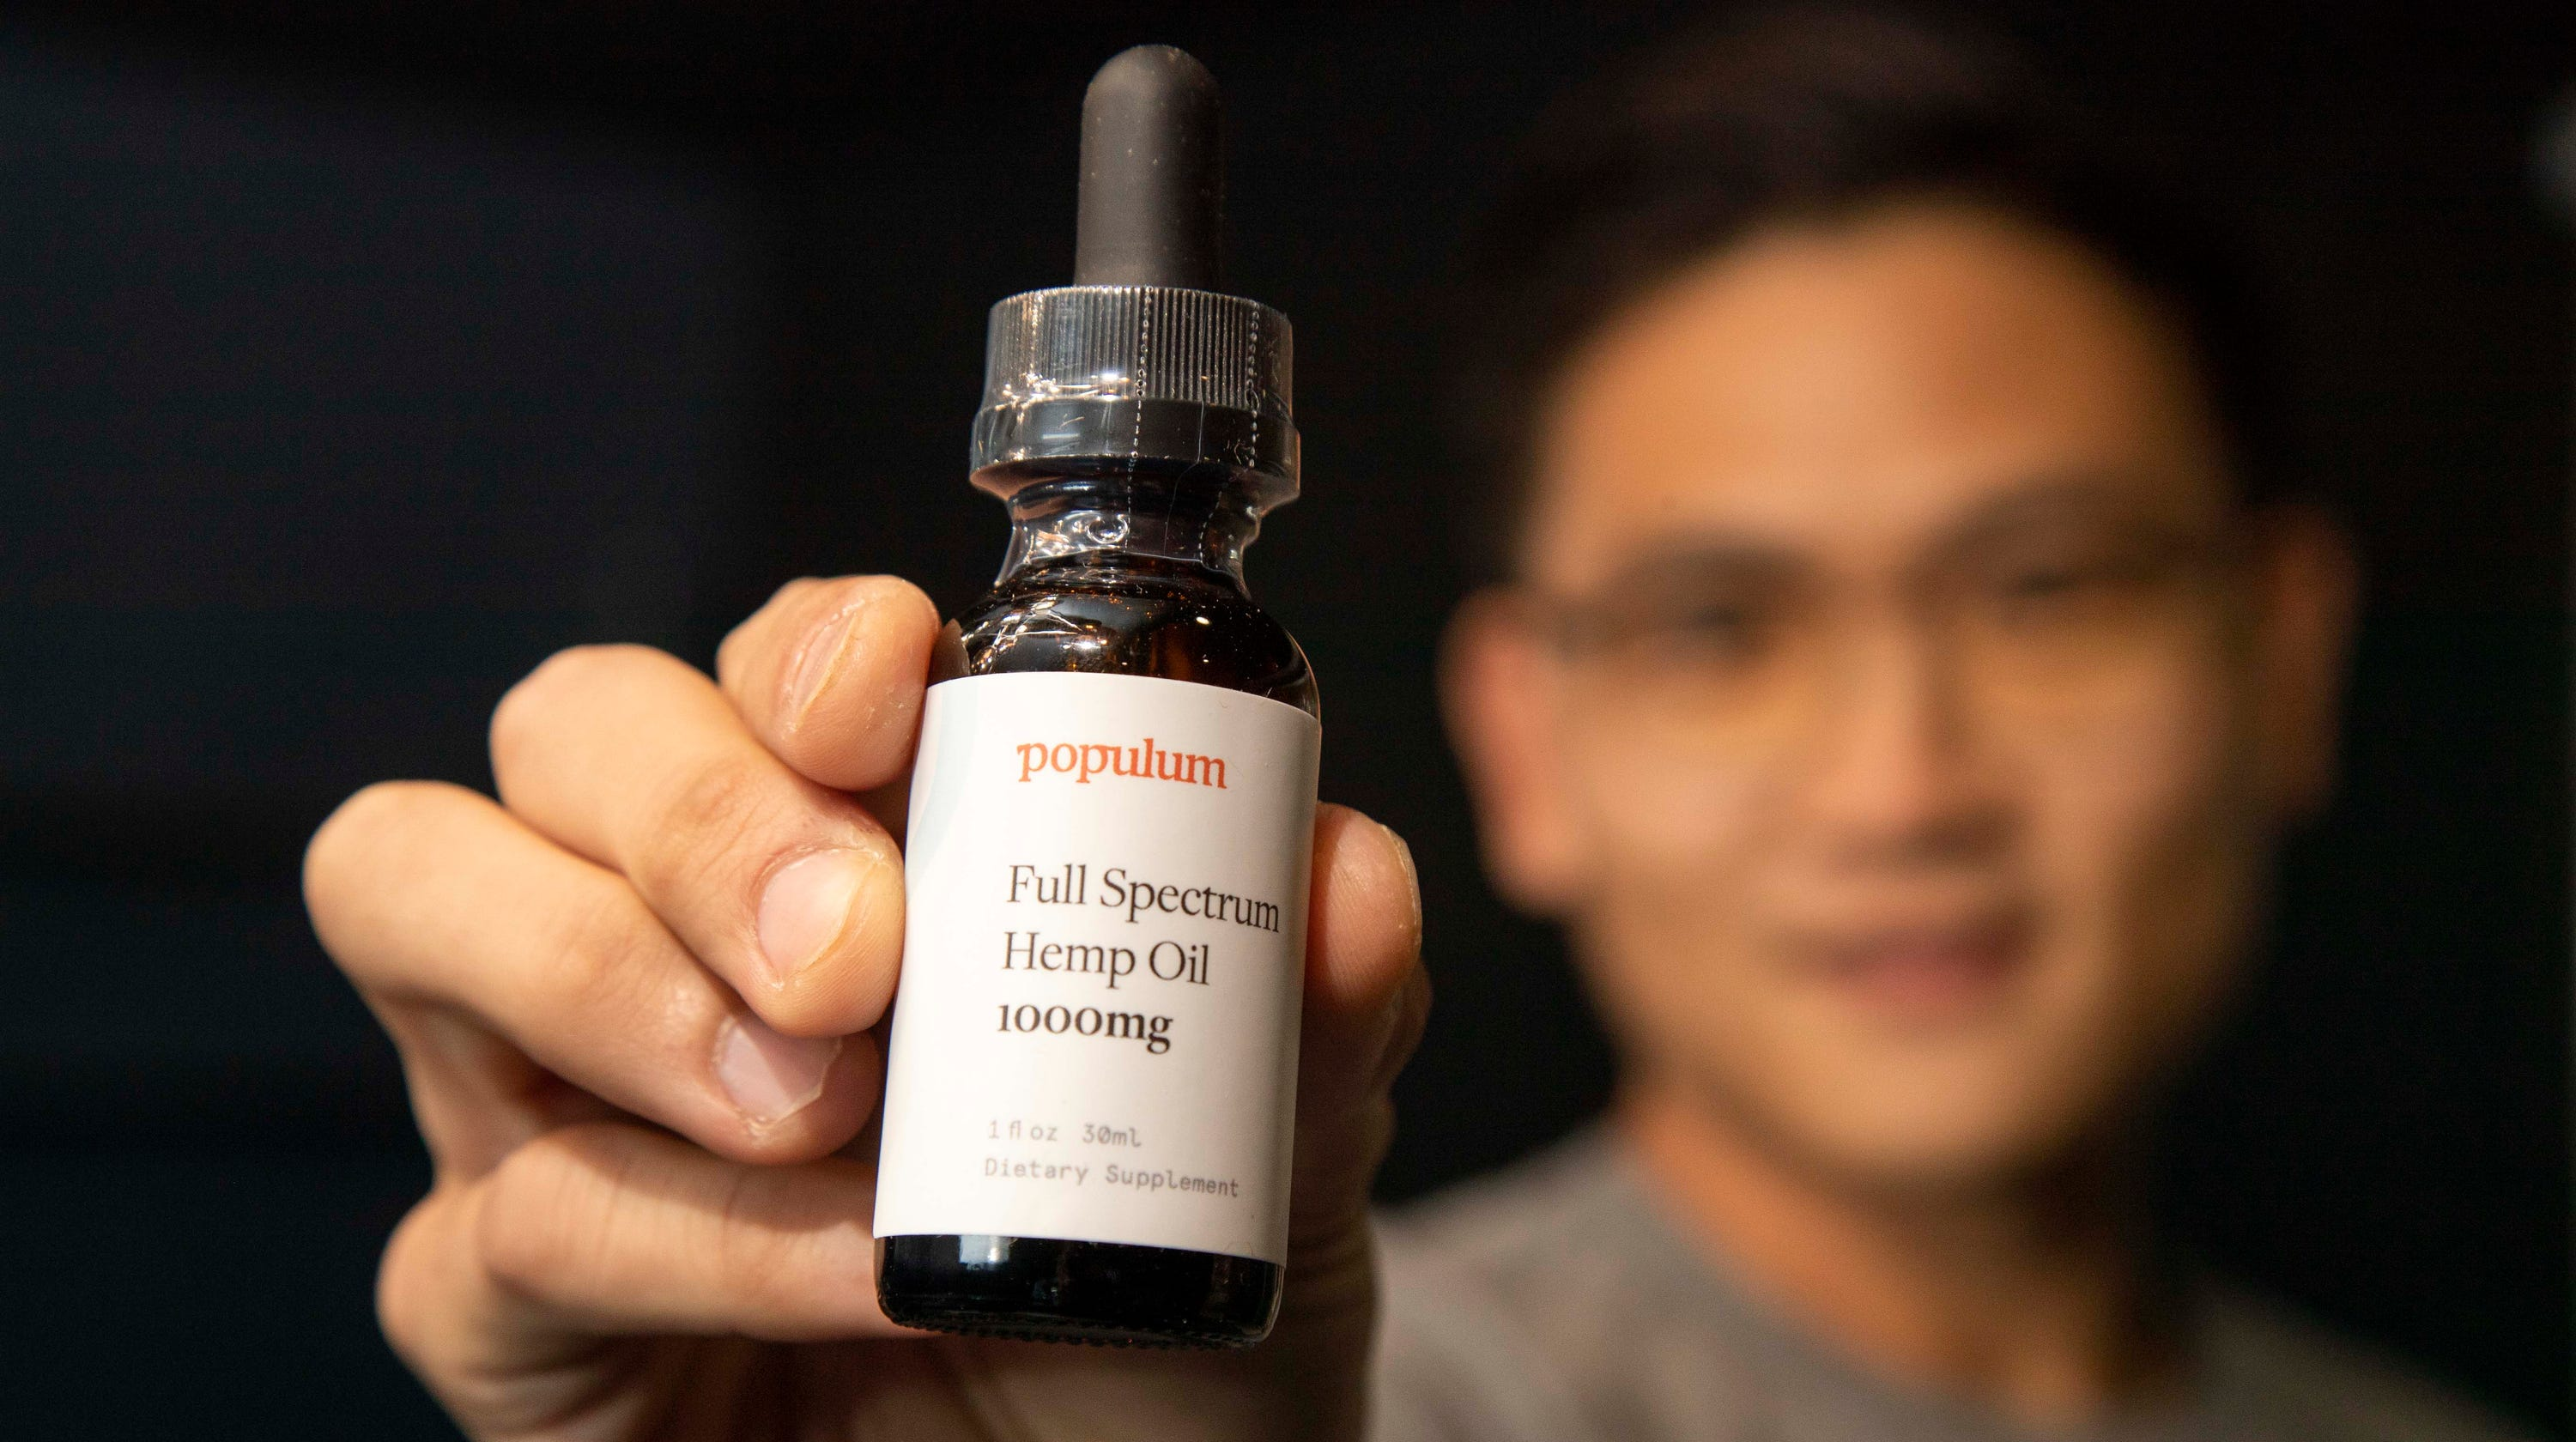 Tempe-based Populum aims to destigmatize CBD hemp oil